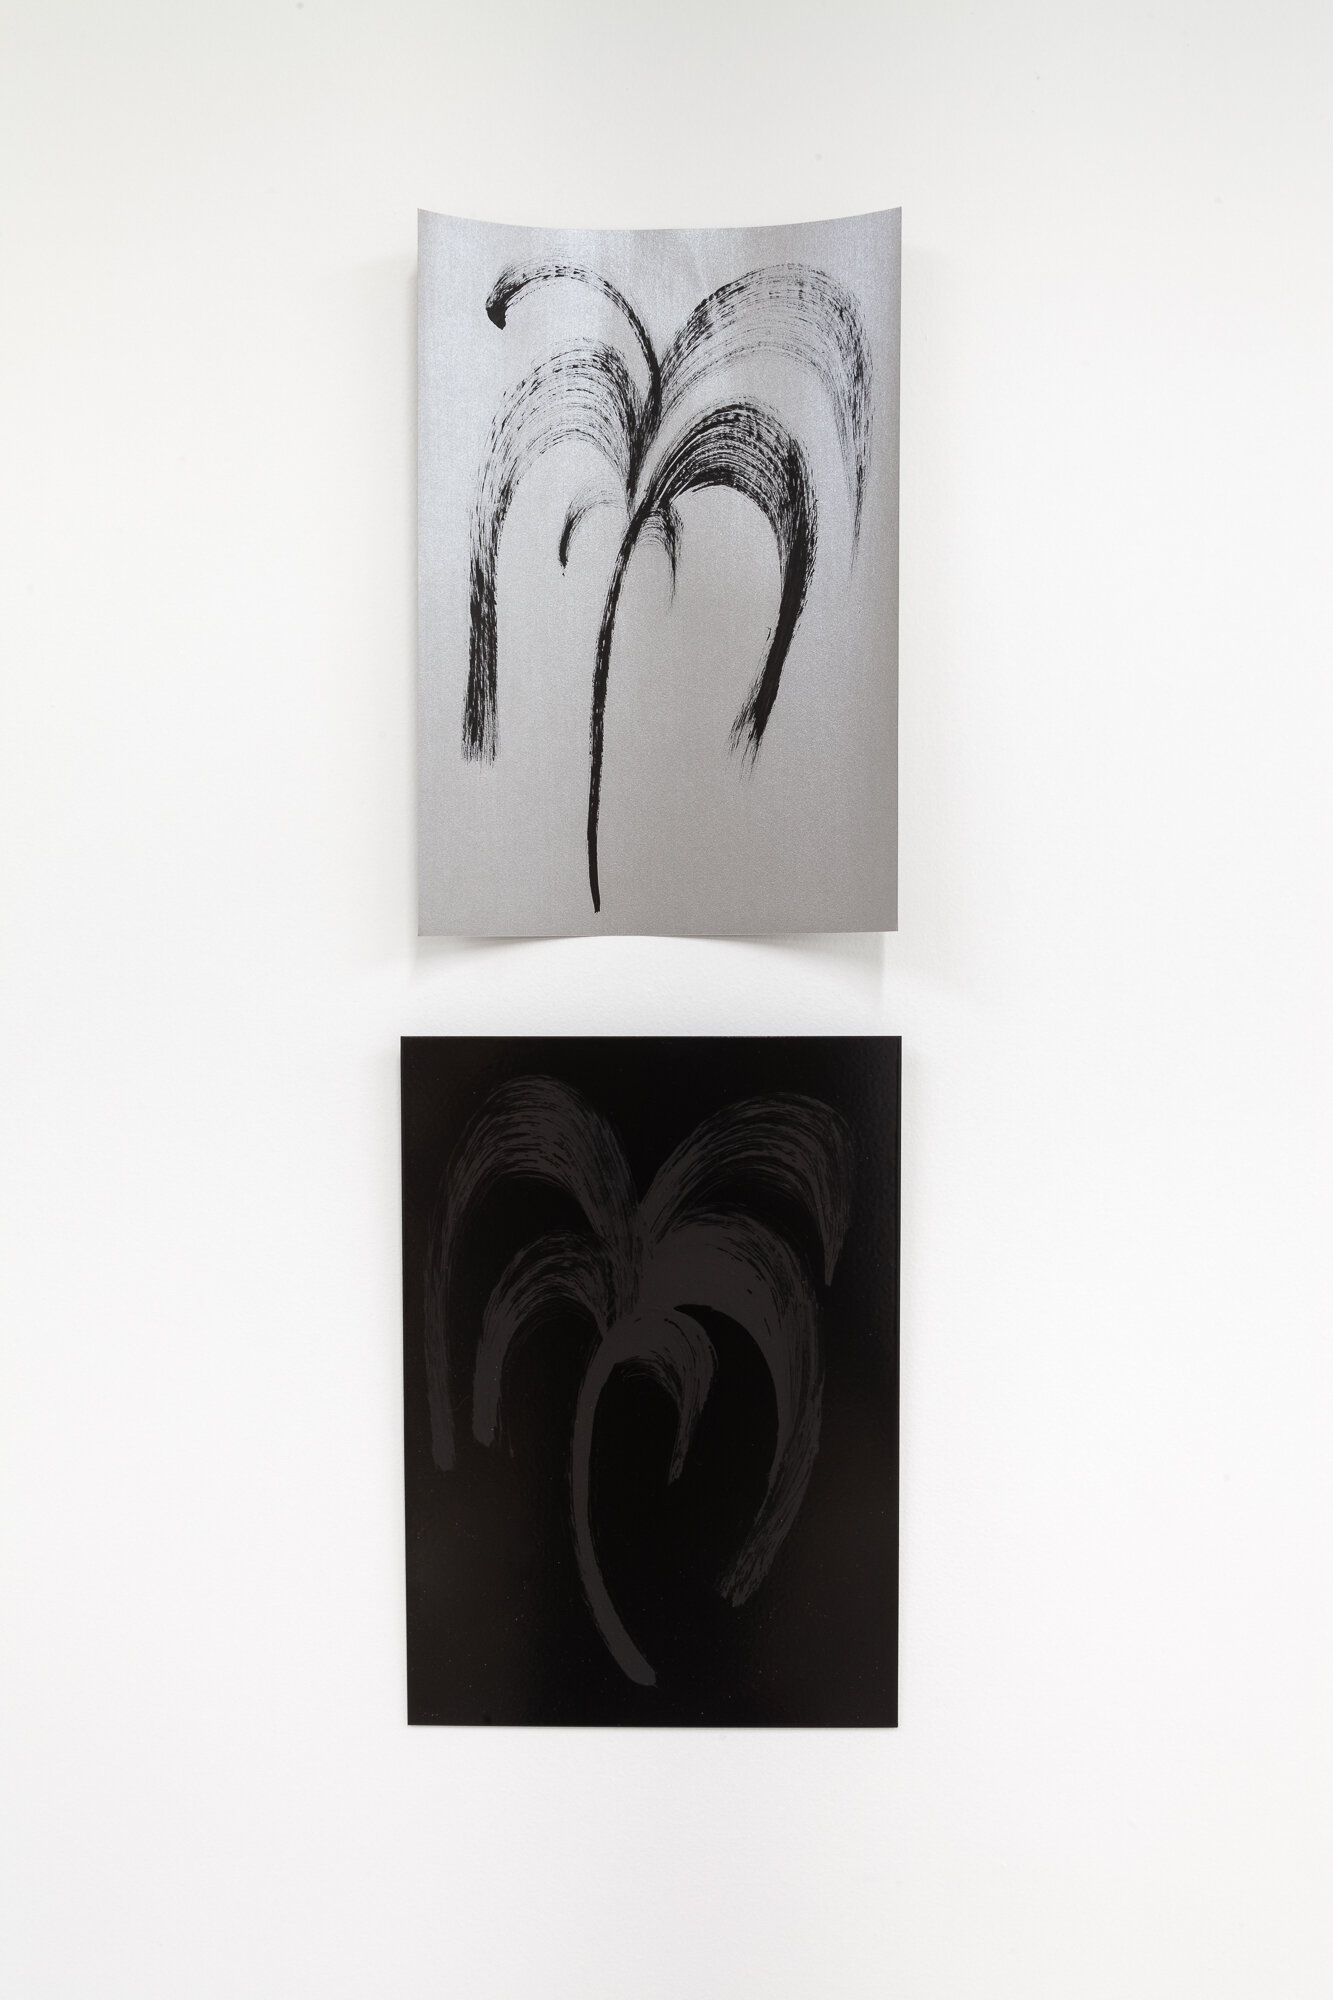 Image: Sarah Ortmeyer,  PALMA , 2019. Gesso on paper / Gesso on metal.  INFERNO CHICAGO , curated by Stephanie Cristello, Chicago Manual Style (Chicago, IL). Copyright Sarah Ortmeyer. Courtesy of Dvir, Tel Aviv / Brussels. Photographer: Robert Chase Heishman.